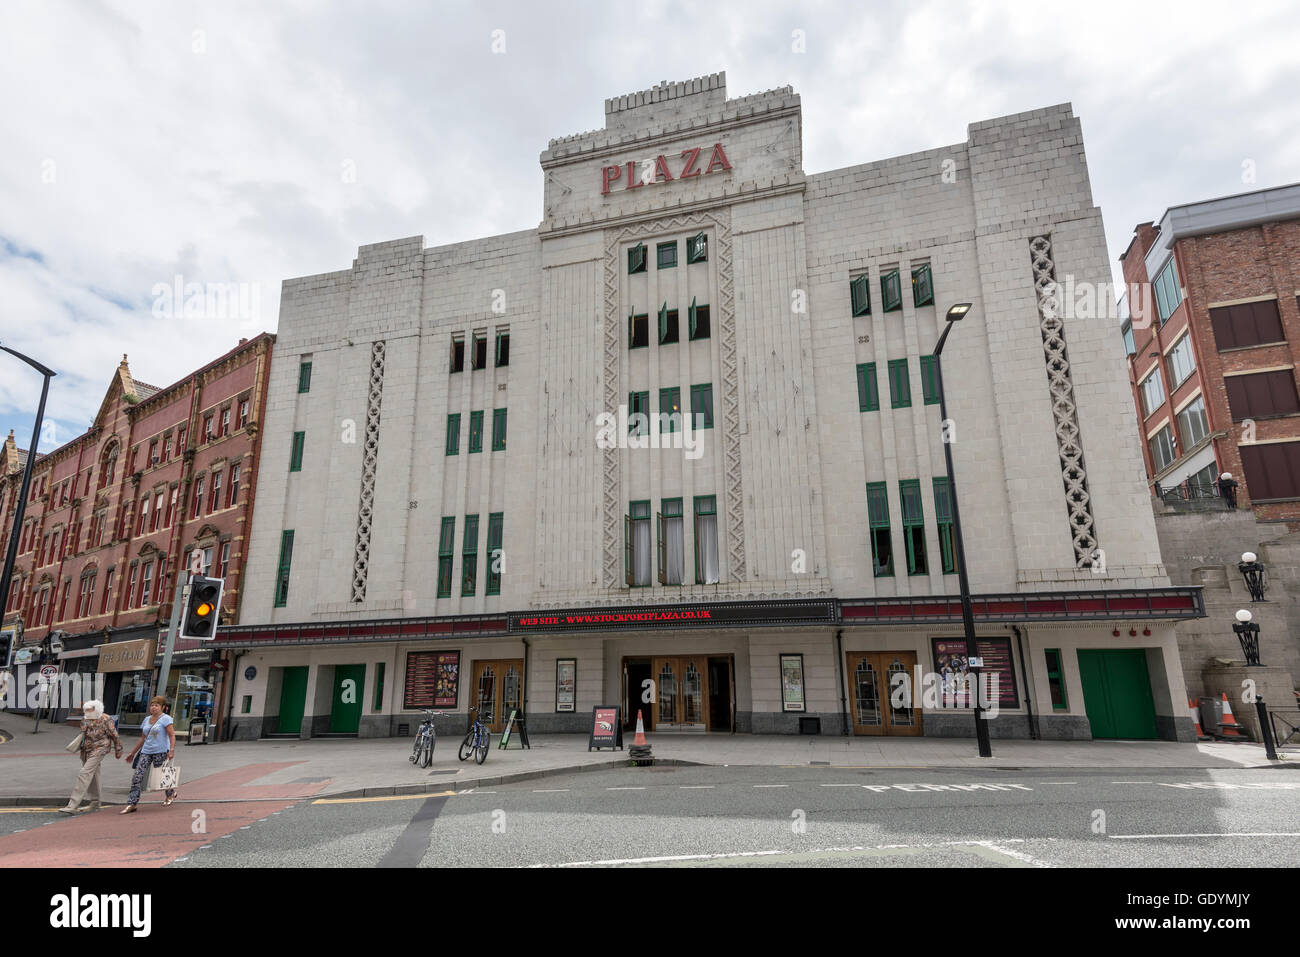 The Stockport Plaza a restored Art Deco theatre in the centre of the town. - Stock Image